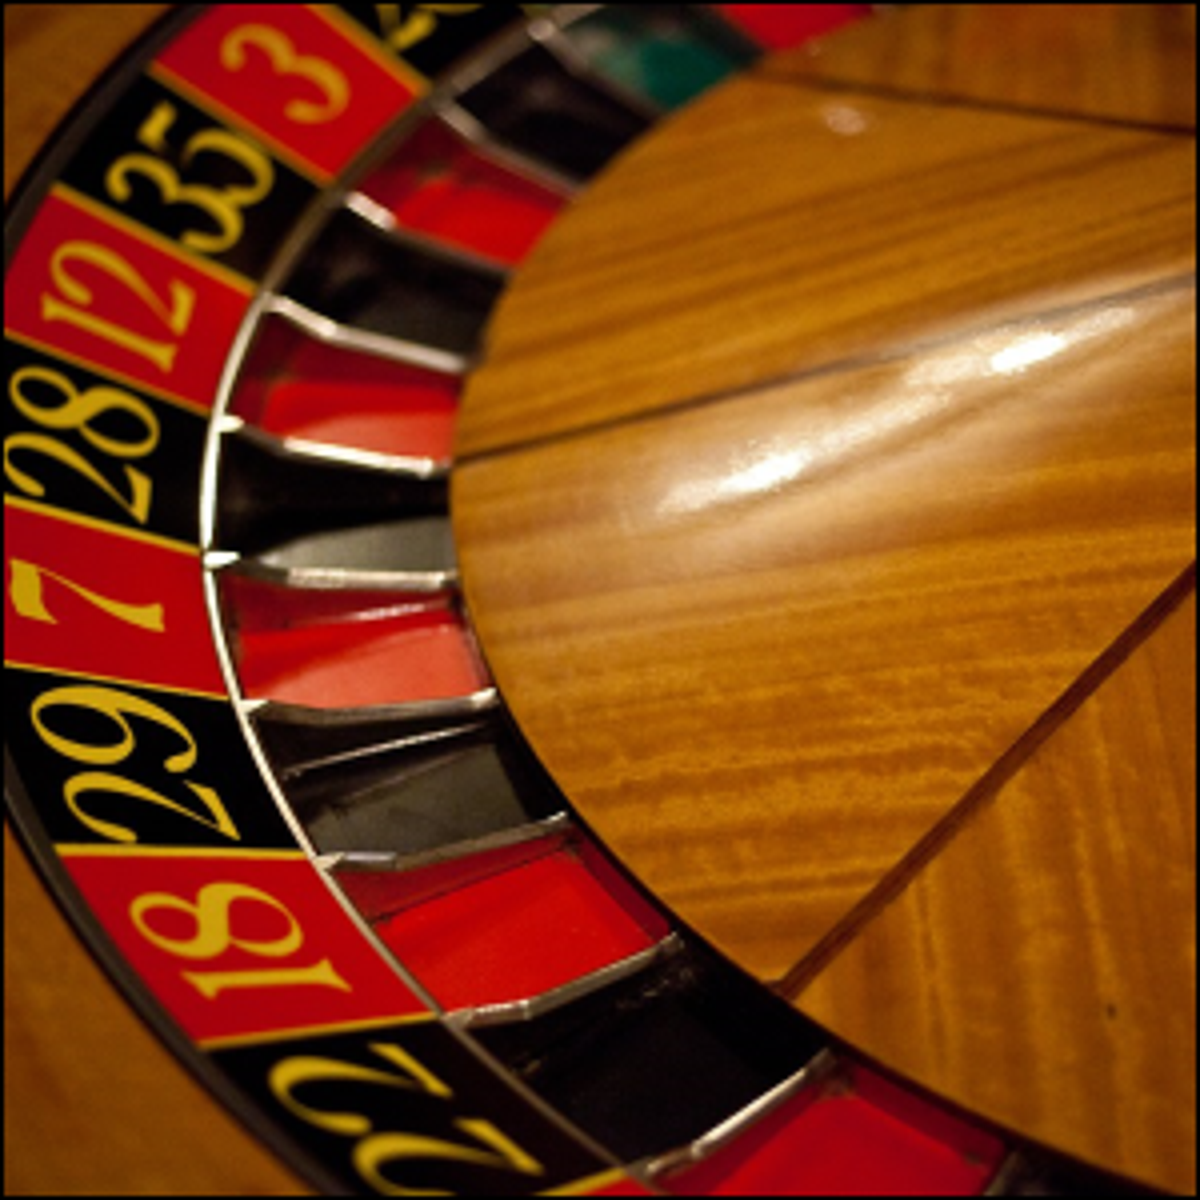 A roulette wheel at rest.